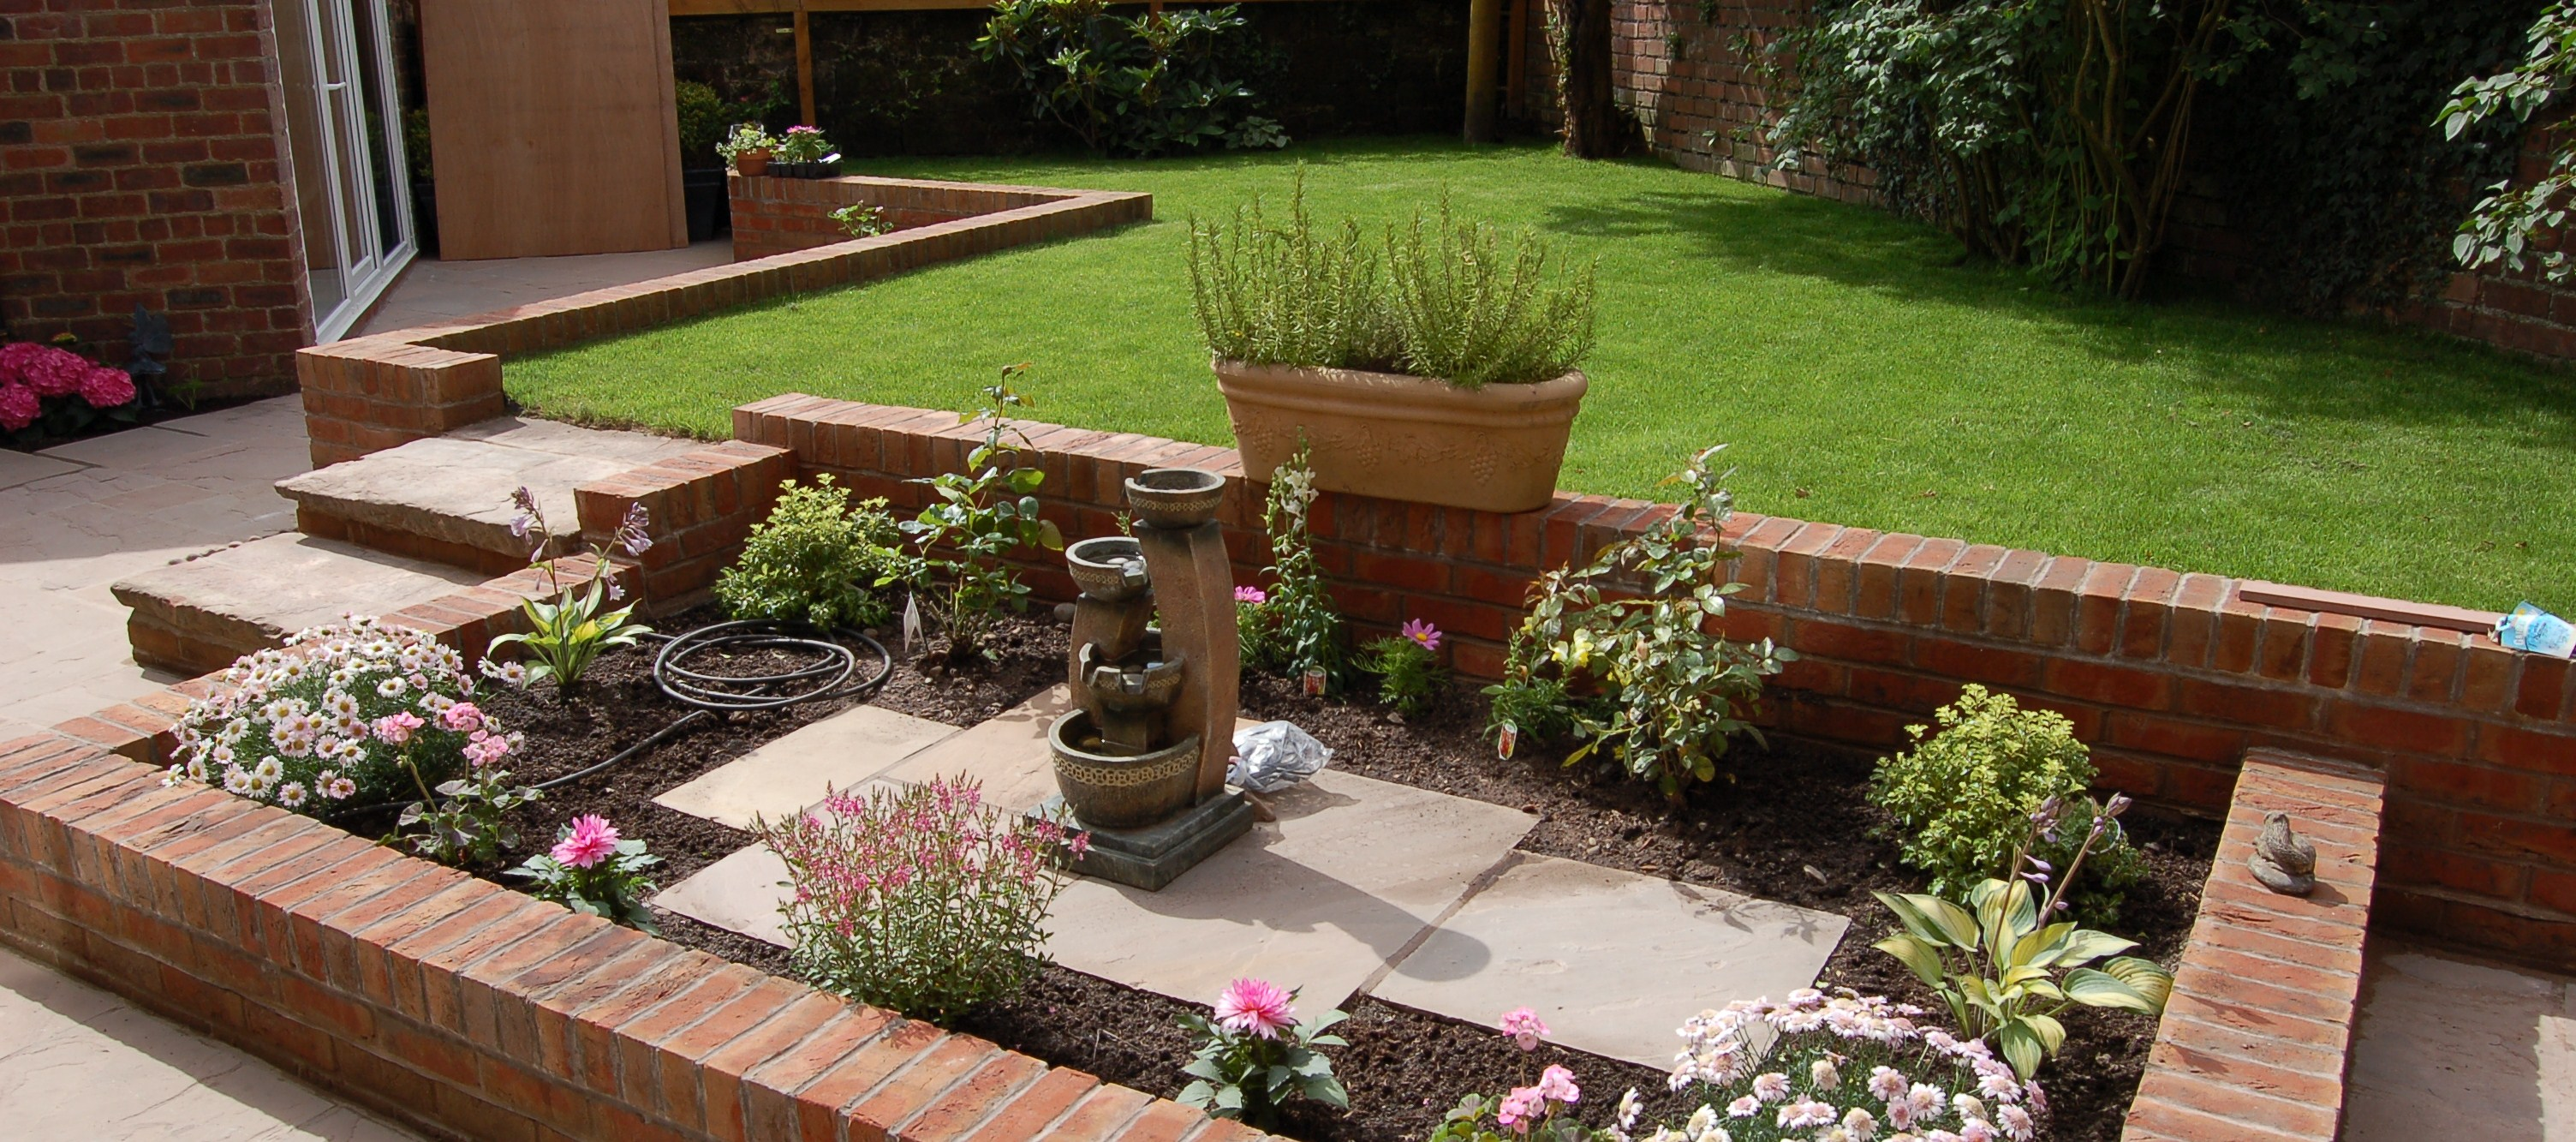 garden with rustic bricks